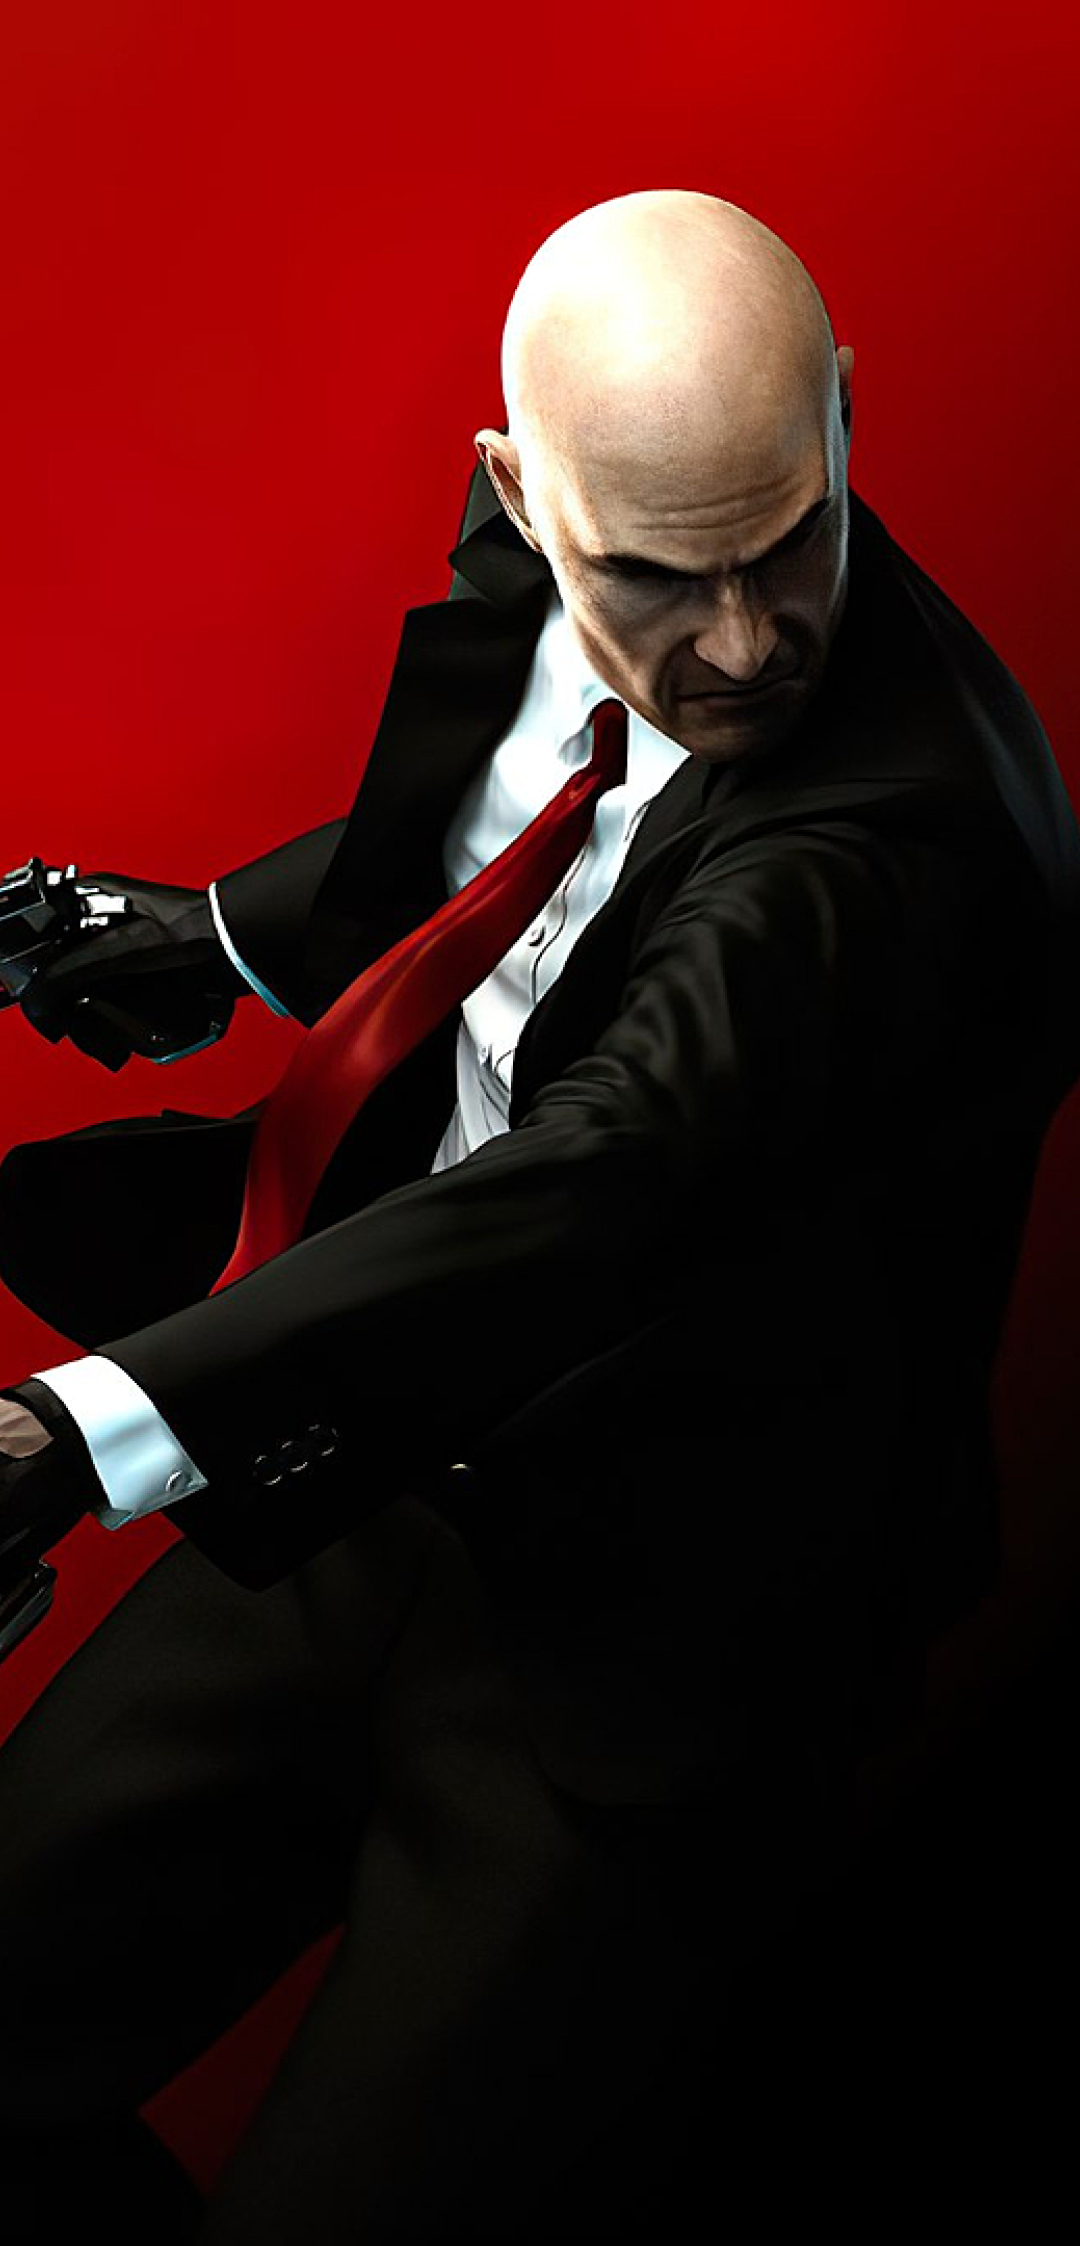 1080x2246 Hitman Absolution Agent 47 1080x2246 Resolution Wallpaper Hd Games 4k Wallpapers Images Photos And Background